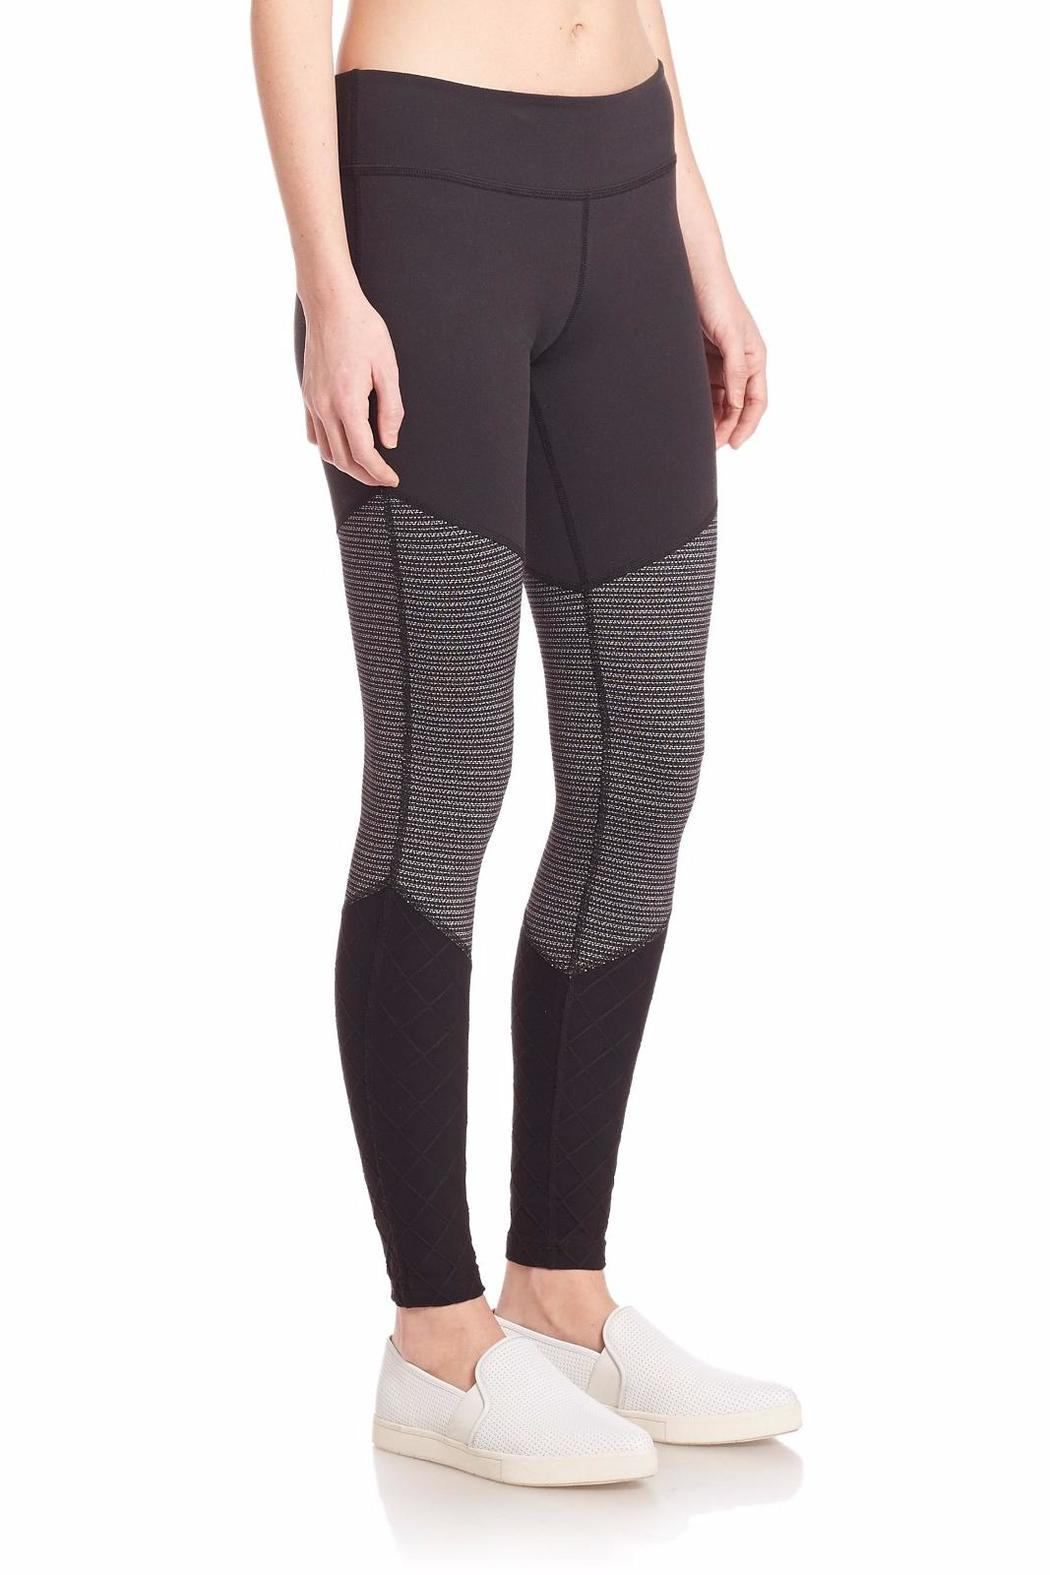 4789d4f027297f Beyond Yoga Tri Panel Legging from Florida by LexyLeah Athletic ...